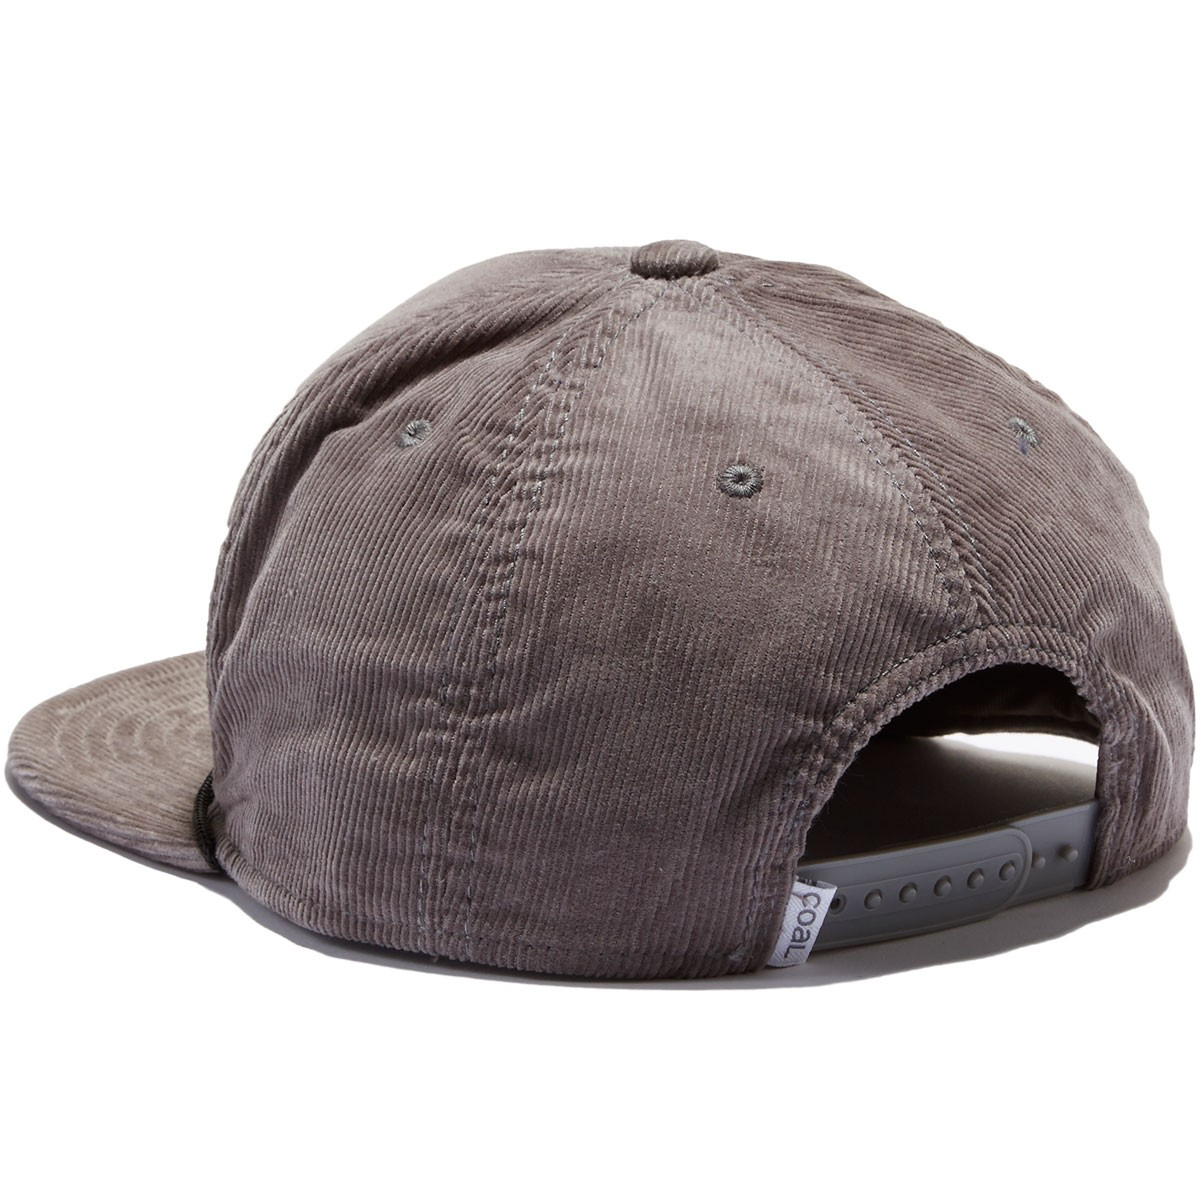 Coal The Wilderness Fish Hat - Grey 4993efbb9ce